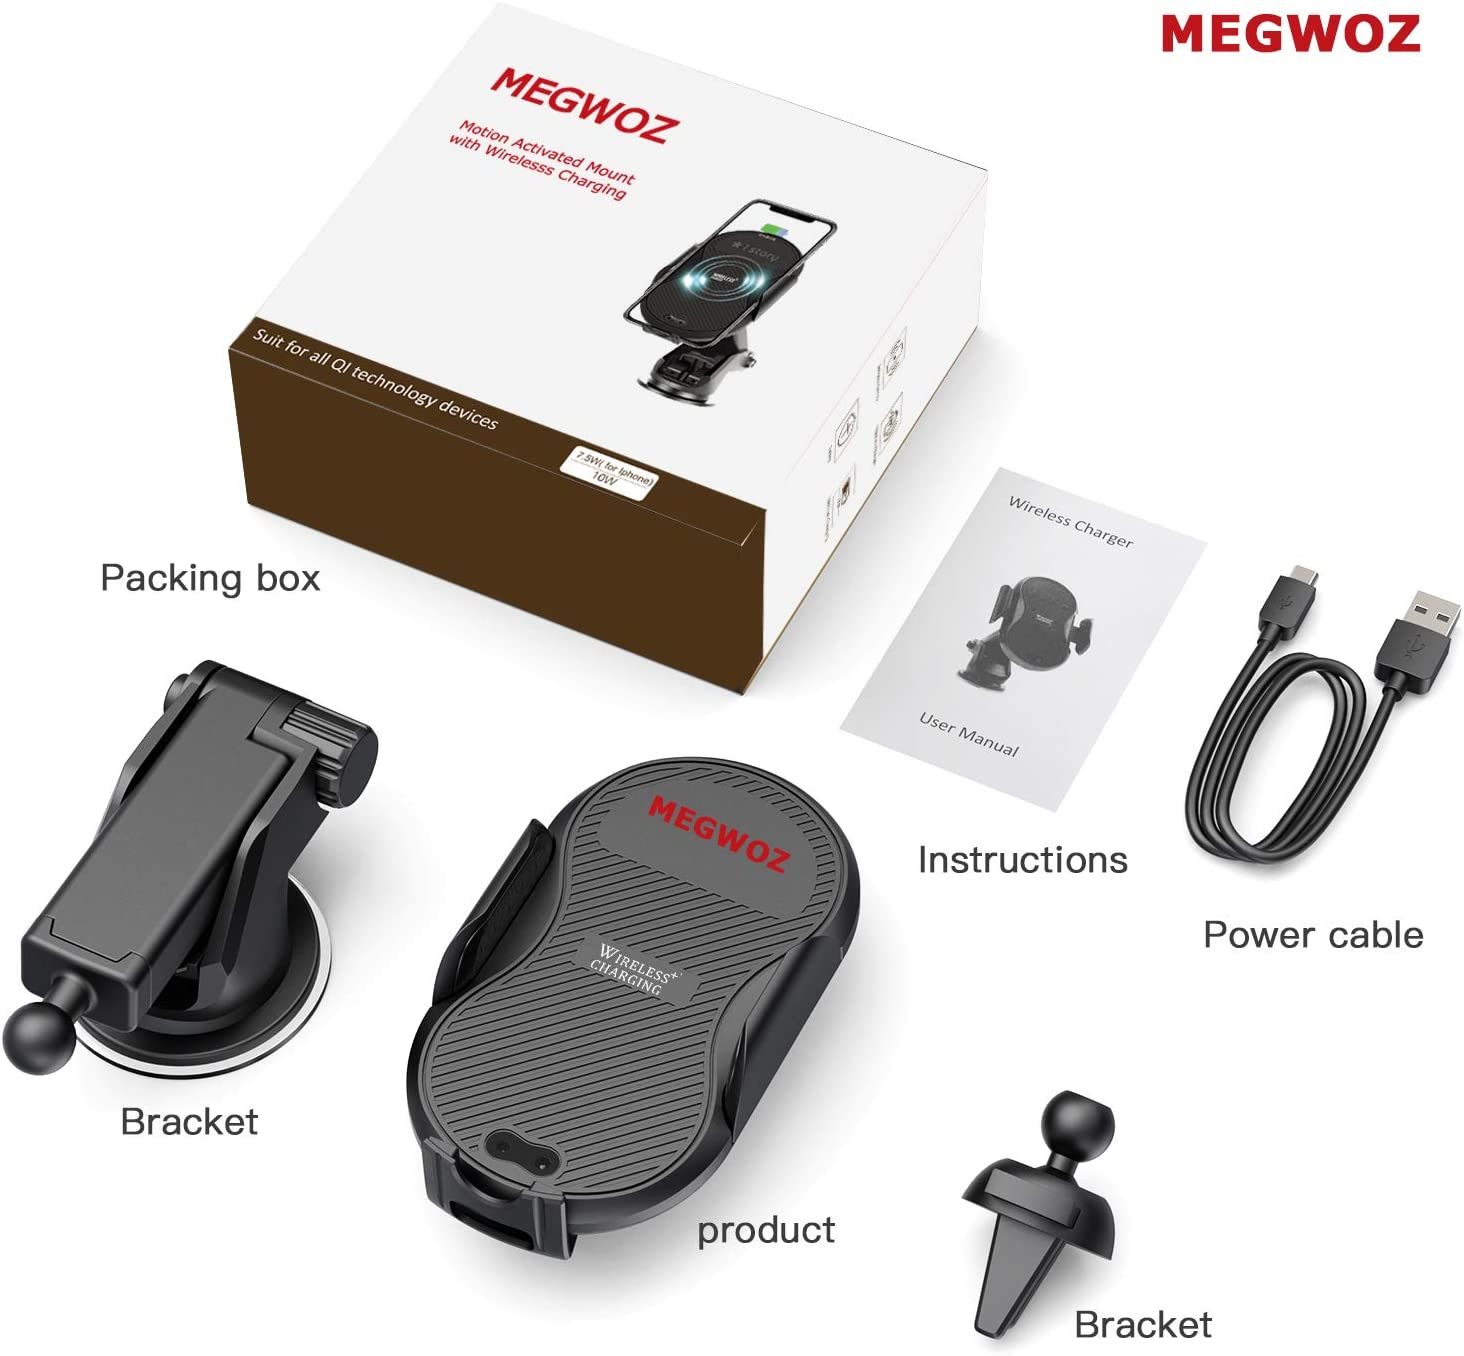 Samsung S10//S10+//Note9//S9//S9+//S8//S8+ /& Qi Devices Auto-Clamping Megwoz Wireless Car Charger Mount 10W//7.5W QI Fast Charging Compatible iPhone Xs//XS Max//XR//X//8//8+ Air Vent Dashboard Phone Holder